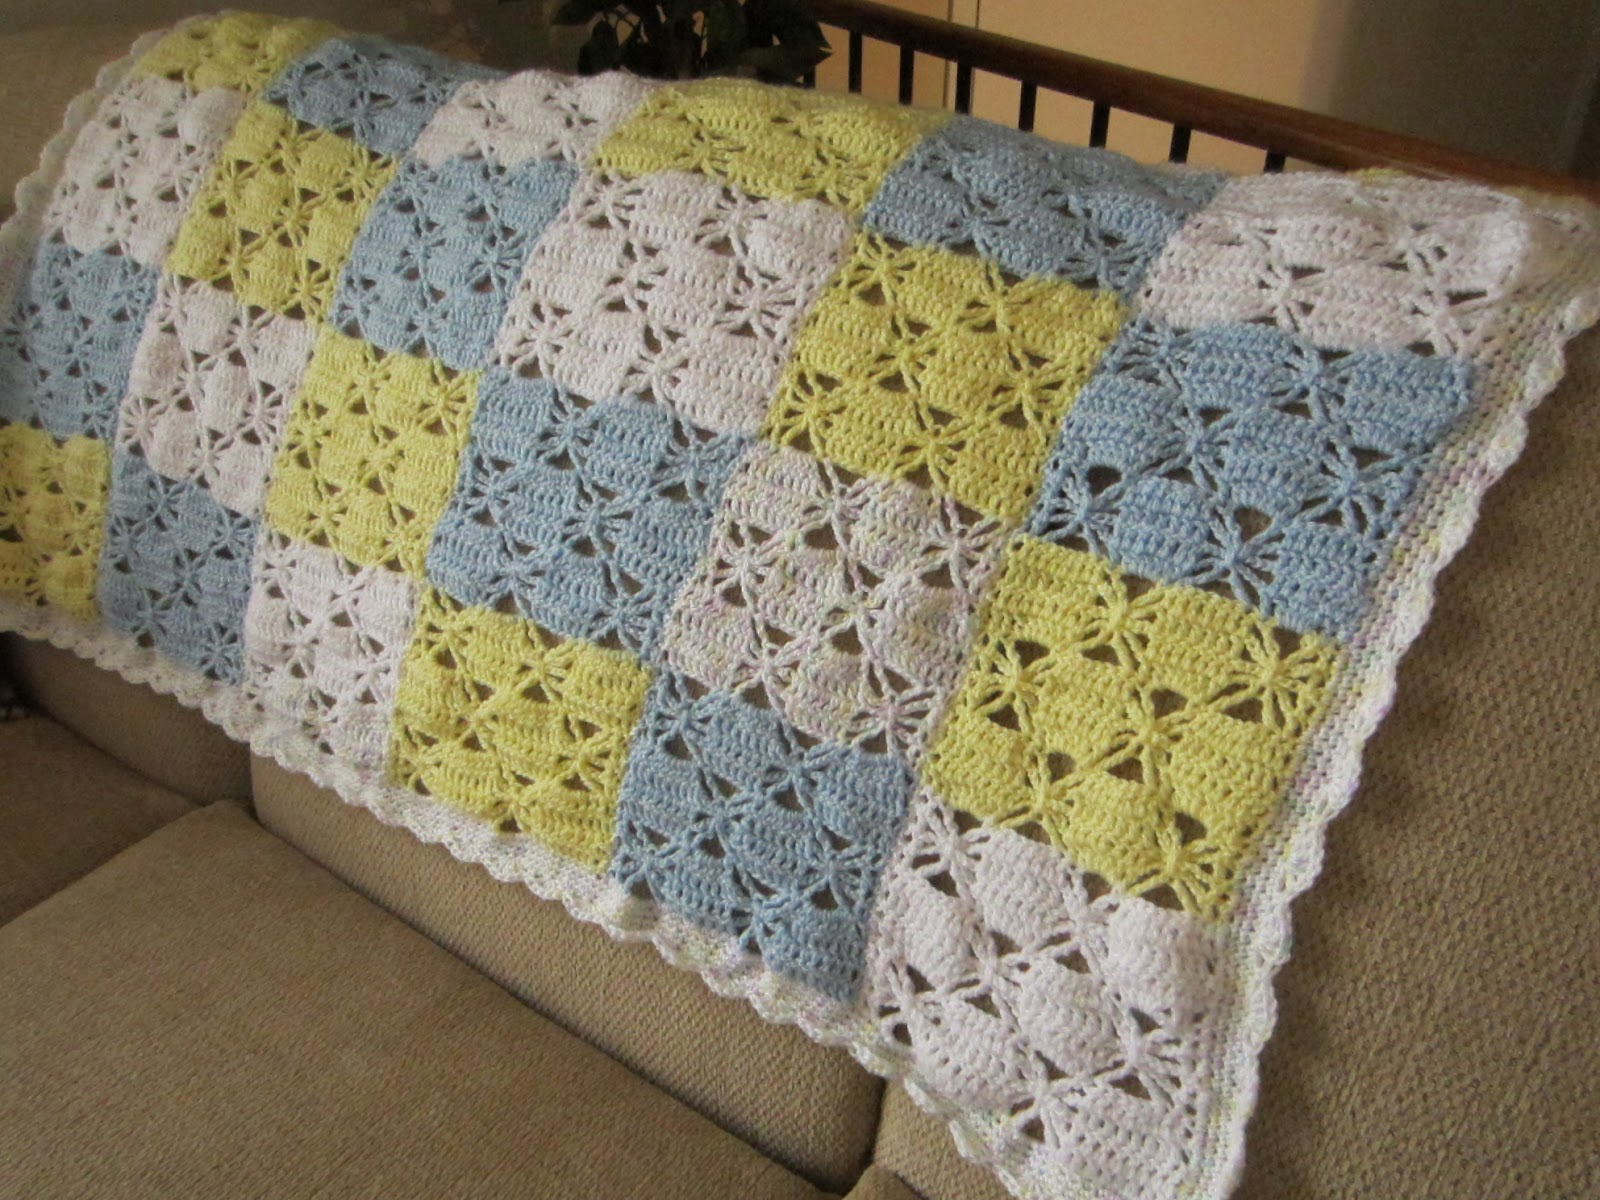 Crocheting A Baby Quilt : Simple Homecraft: Crocheted Baby Blanket